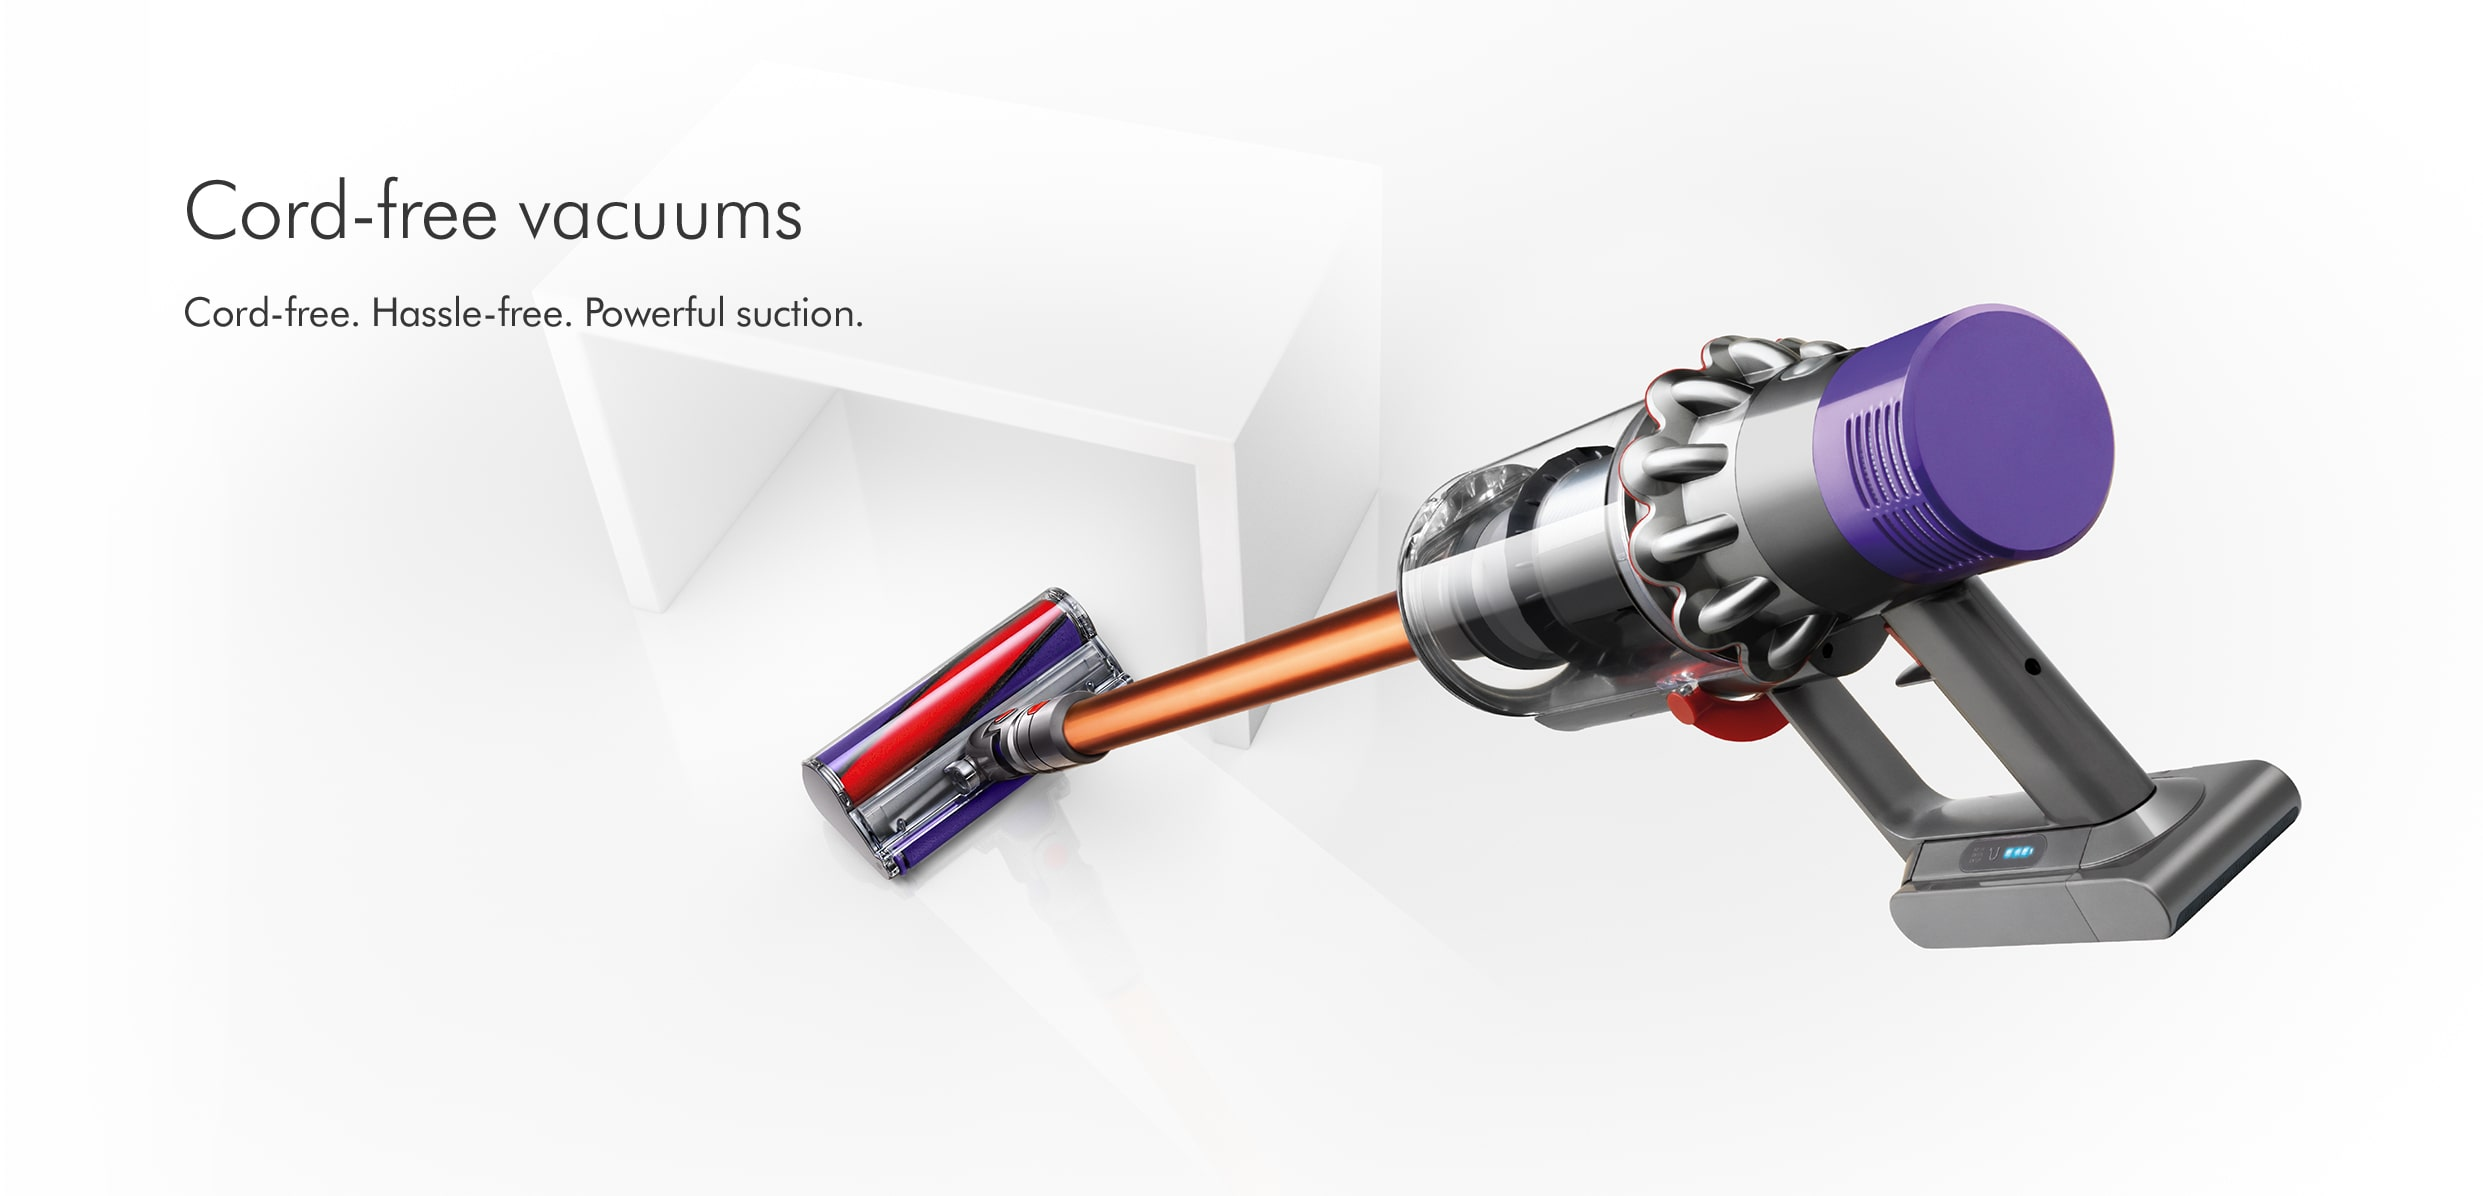 Dyson Cord-Free Vacuums at electricshop.com